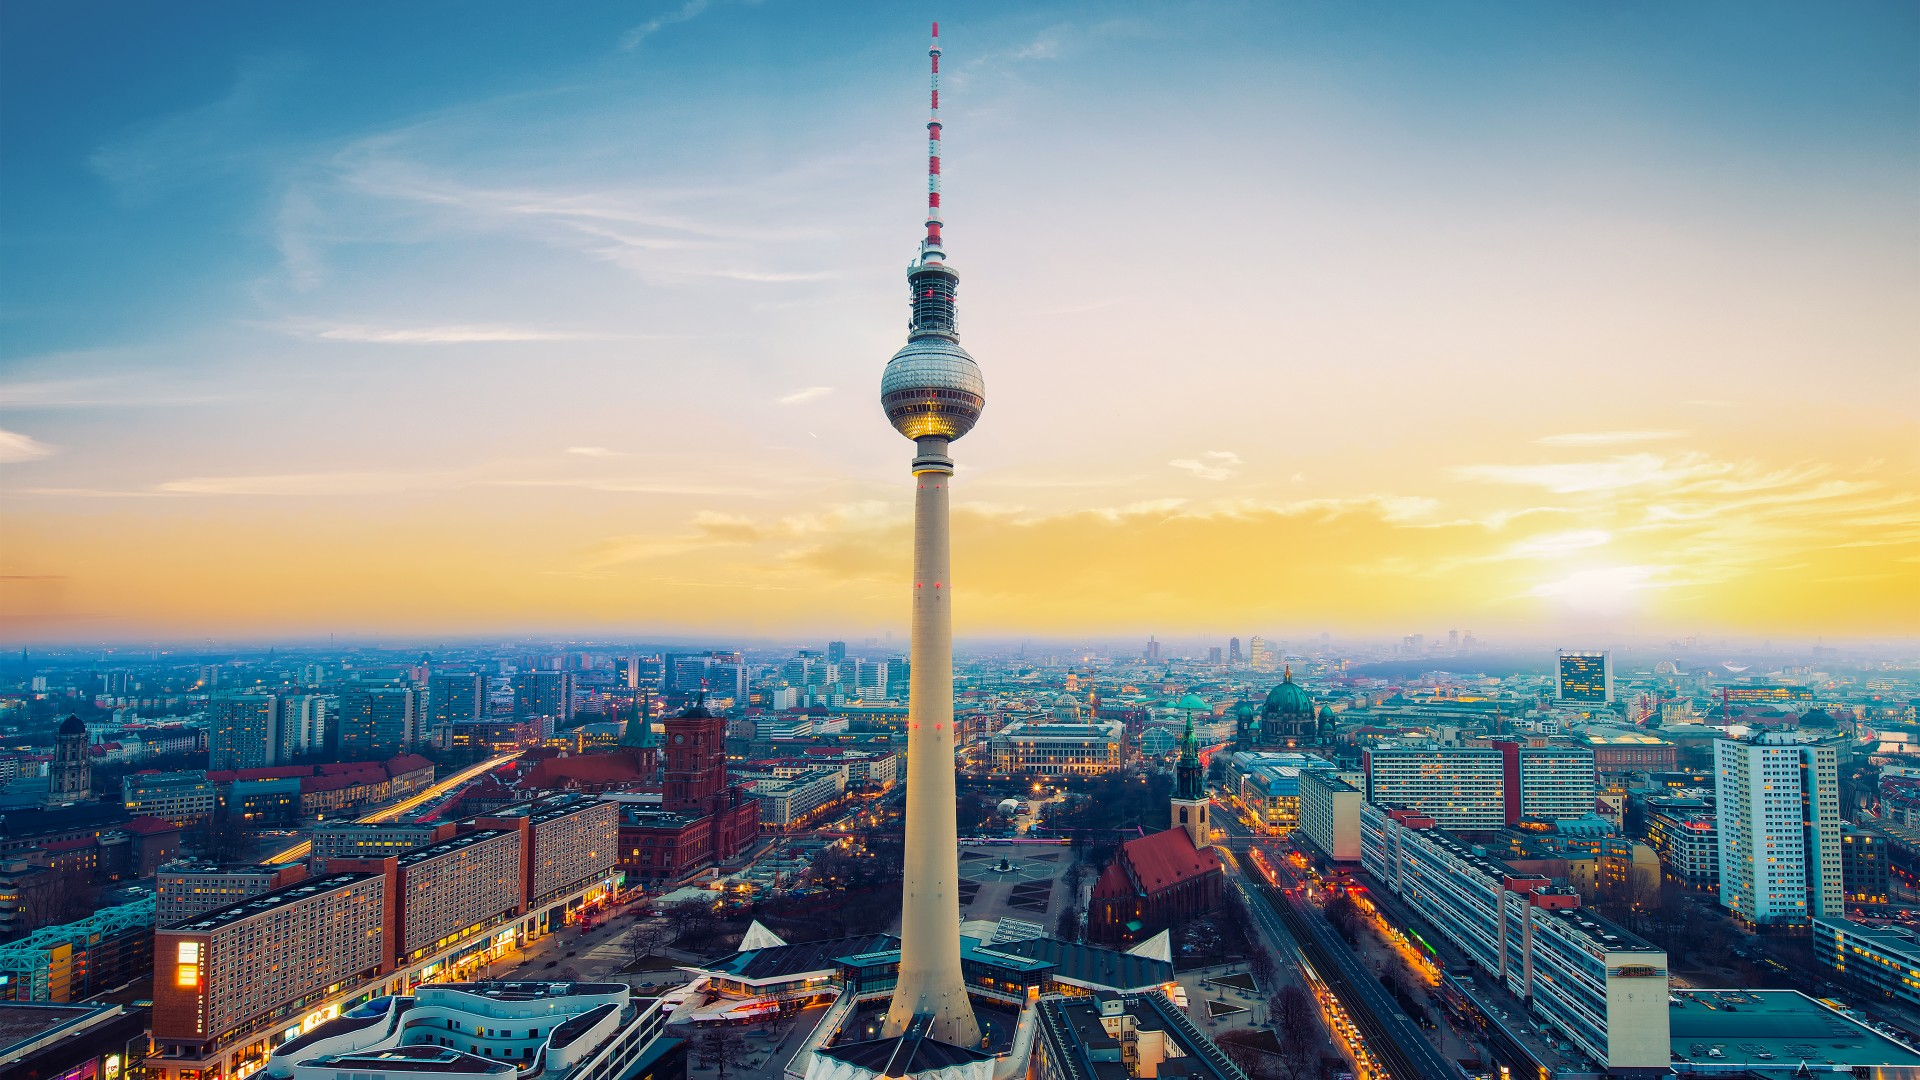 Cute Girly Wallpapers For Android Fernsehturm Berlin Tv Tower Germany Wallpapers Hd